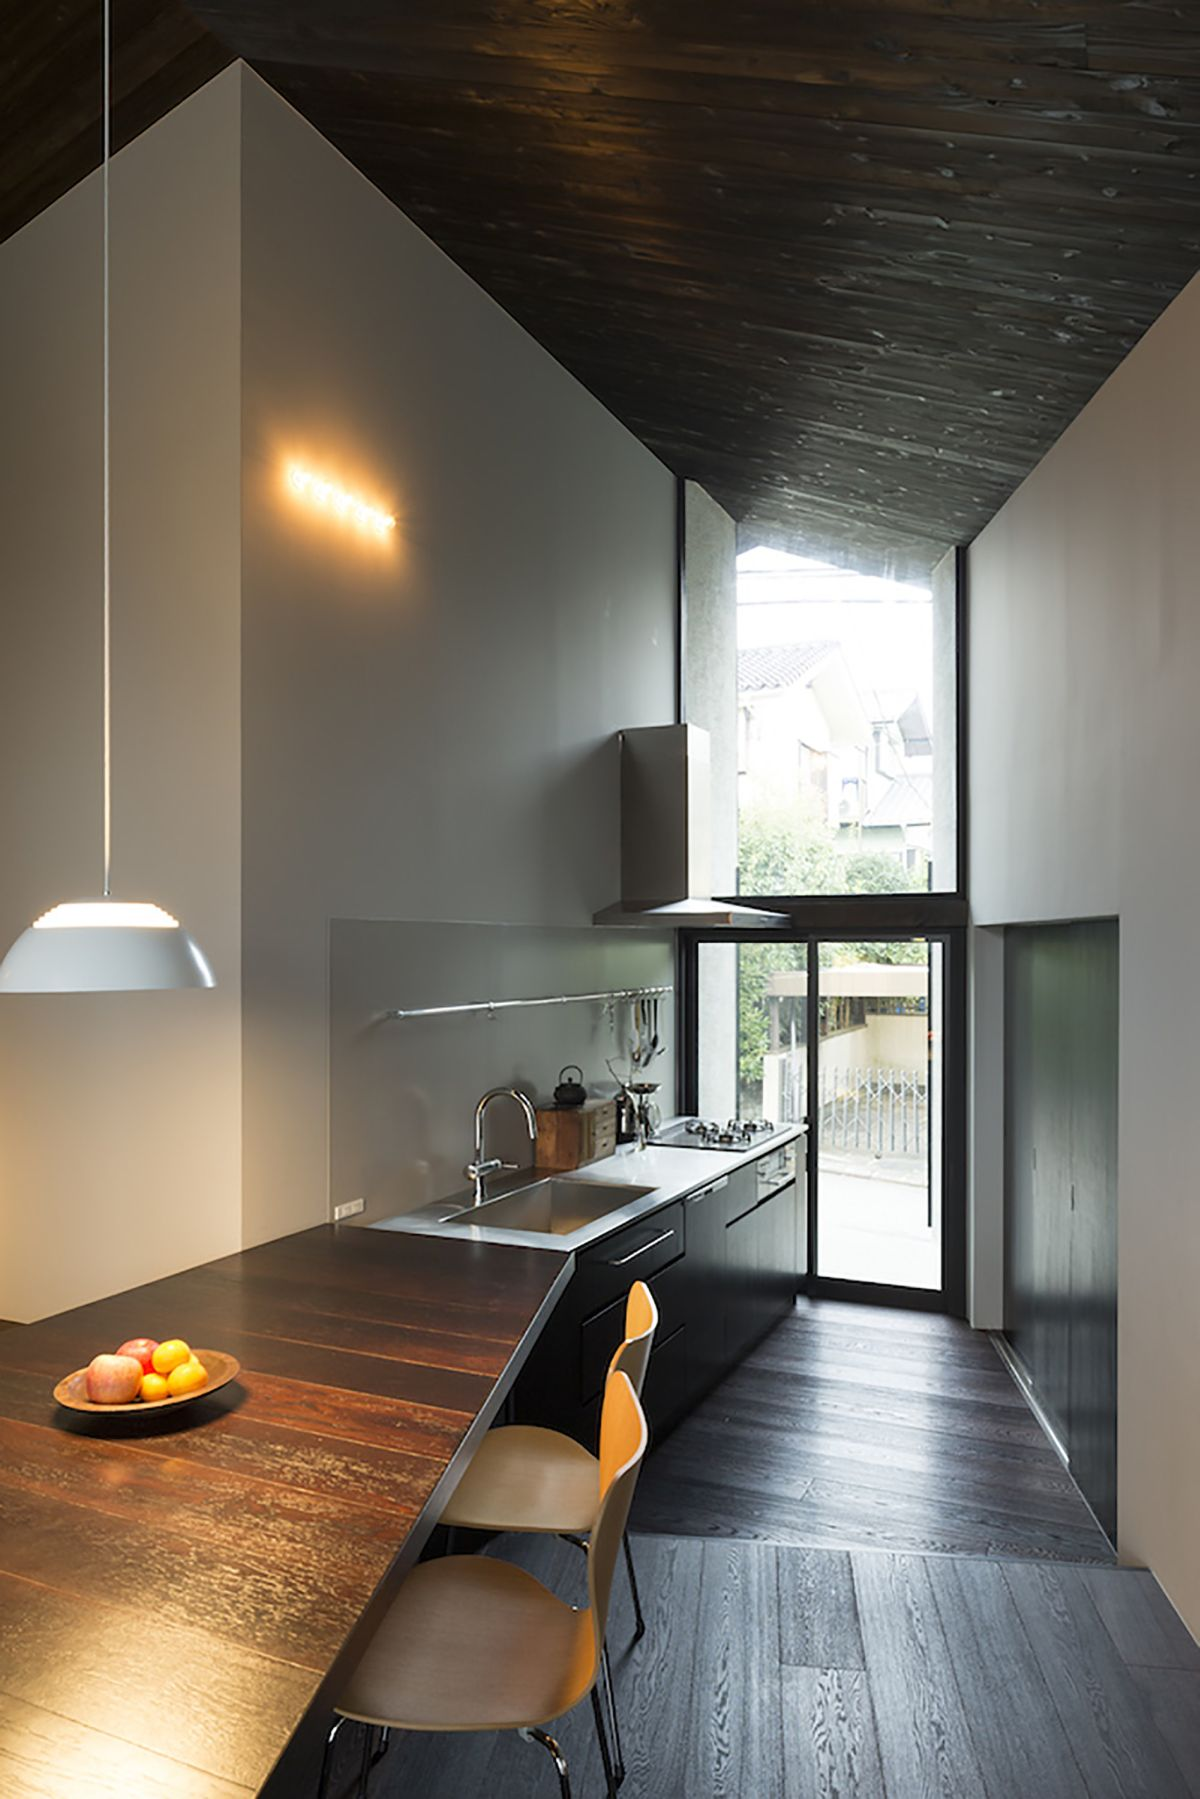 Narrow and angle kitchen design